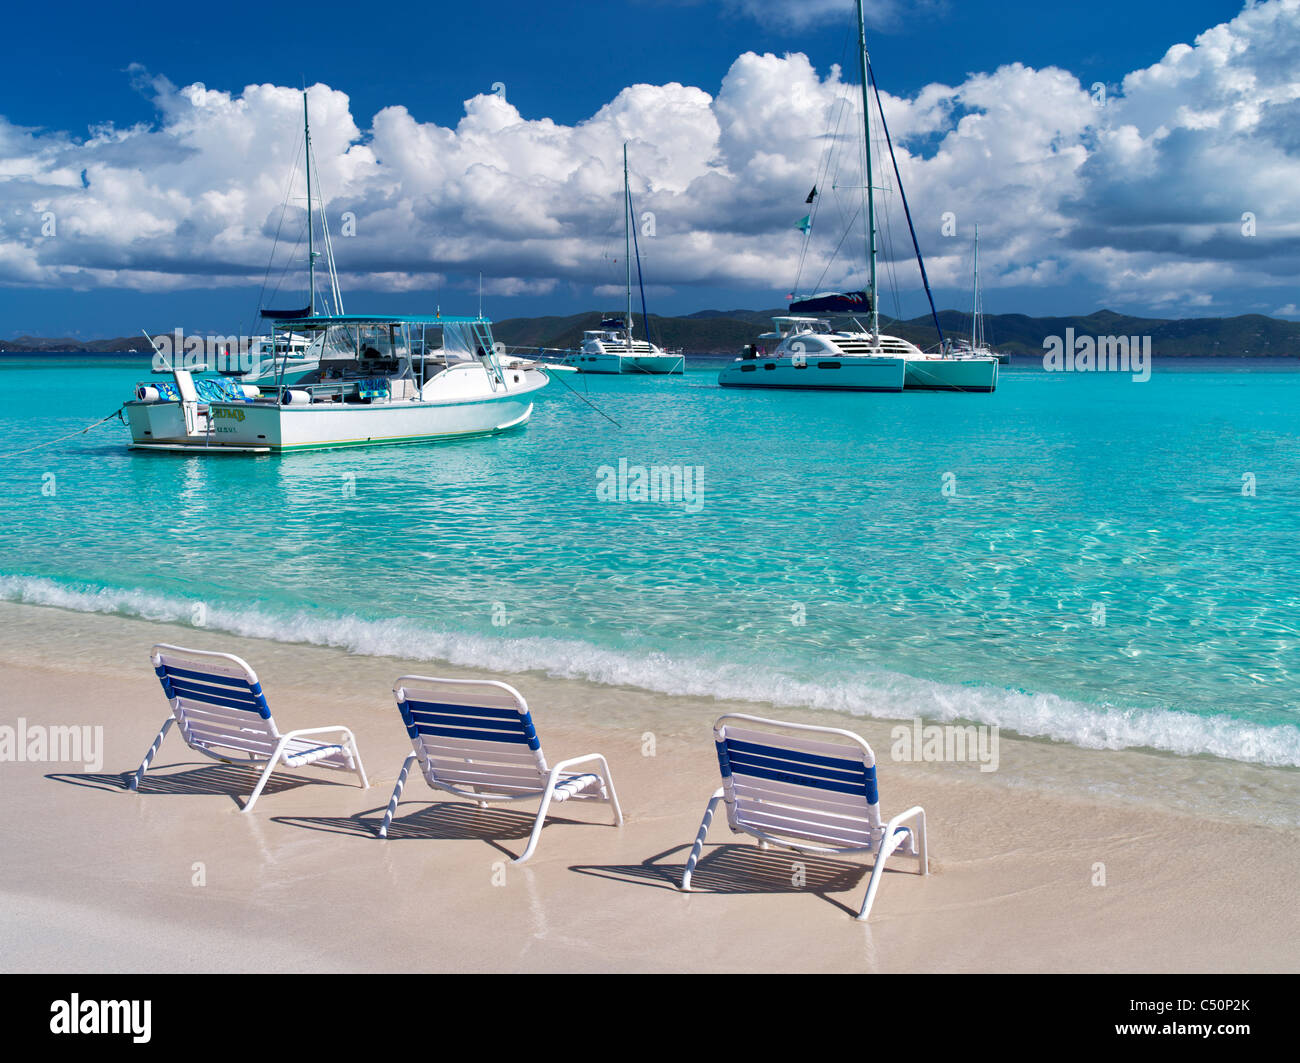 Beach and boats with chairs. Jost Van Dyke. British Virgin Islands - Stock Image